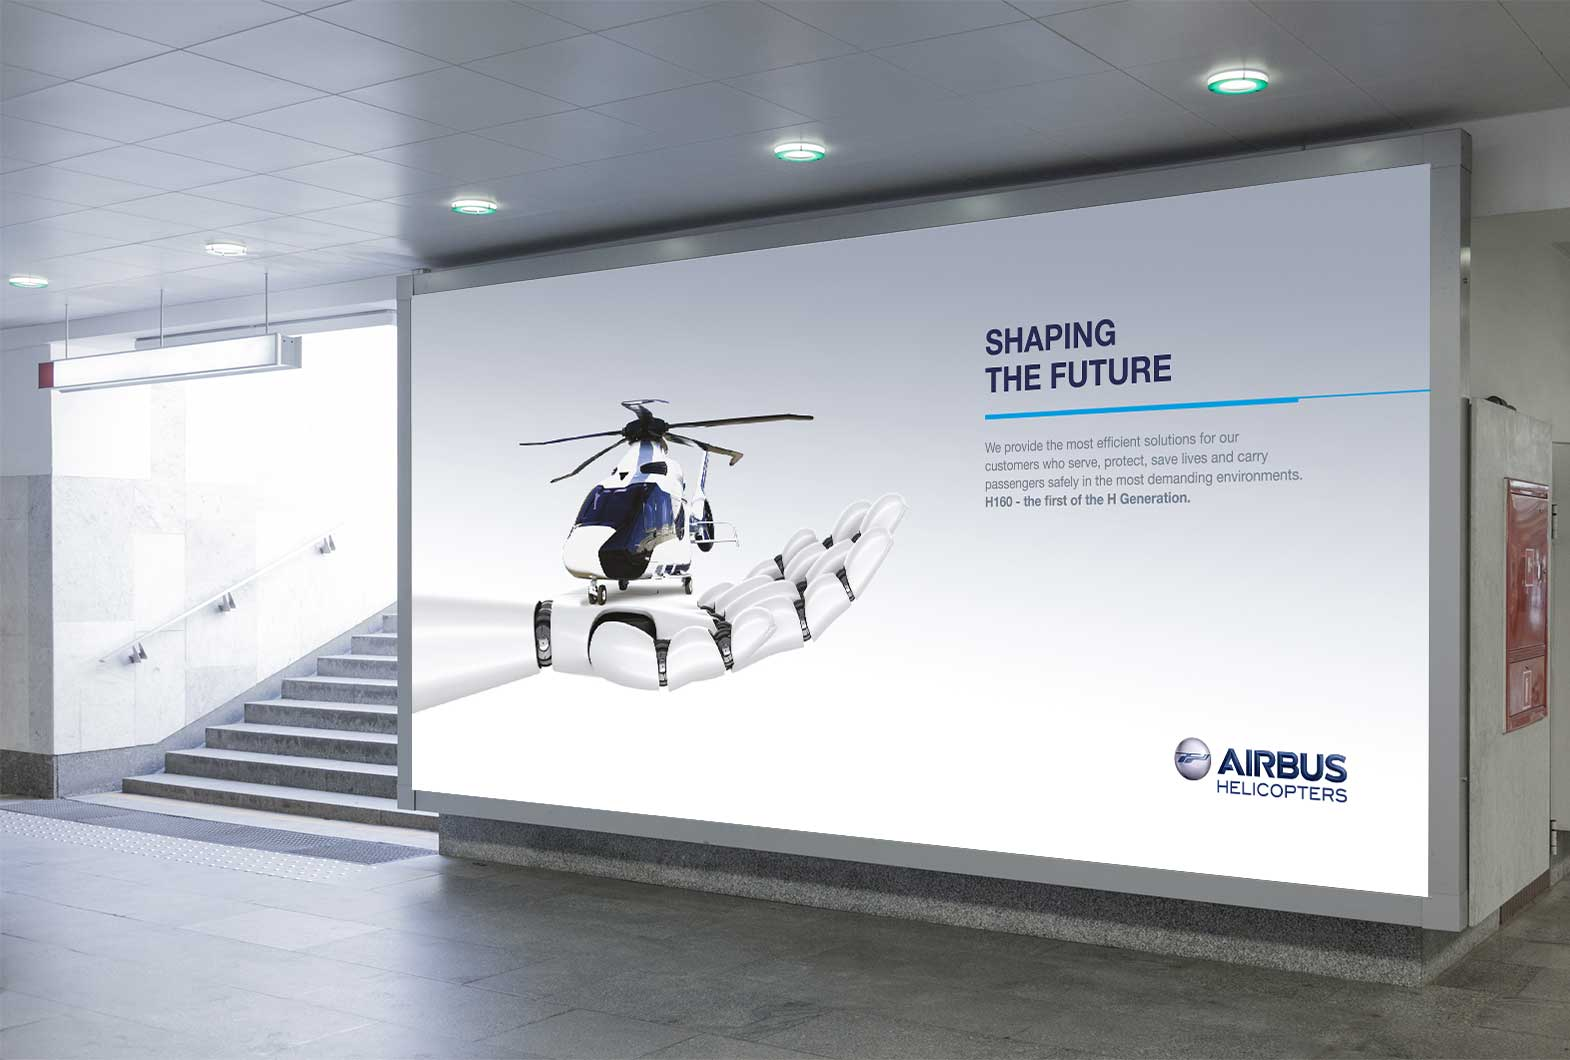 Airbus Helicopters aviation marketing